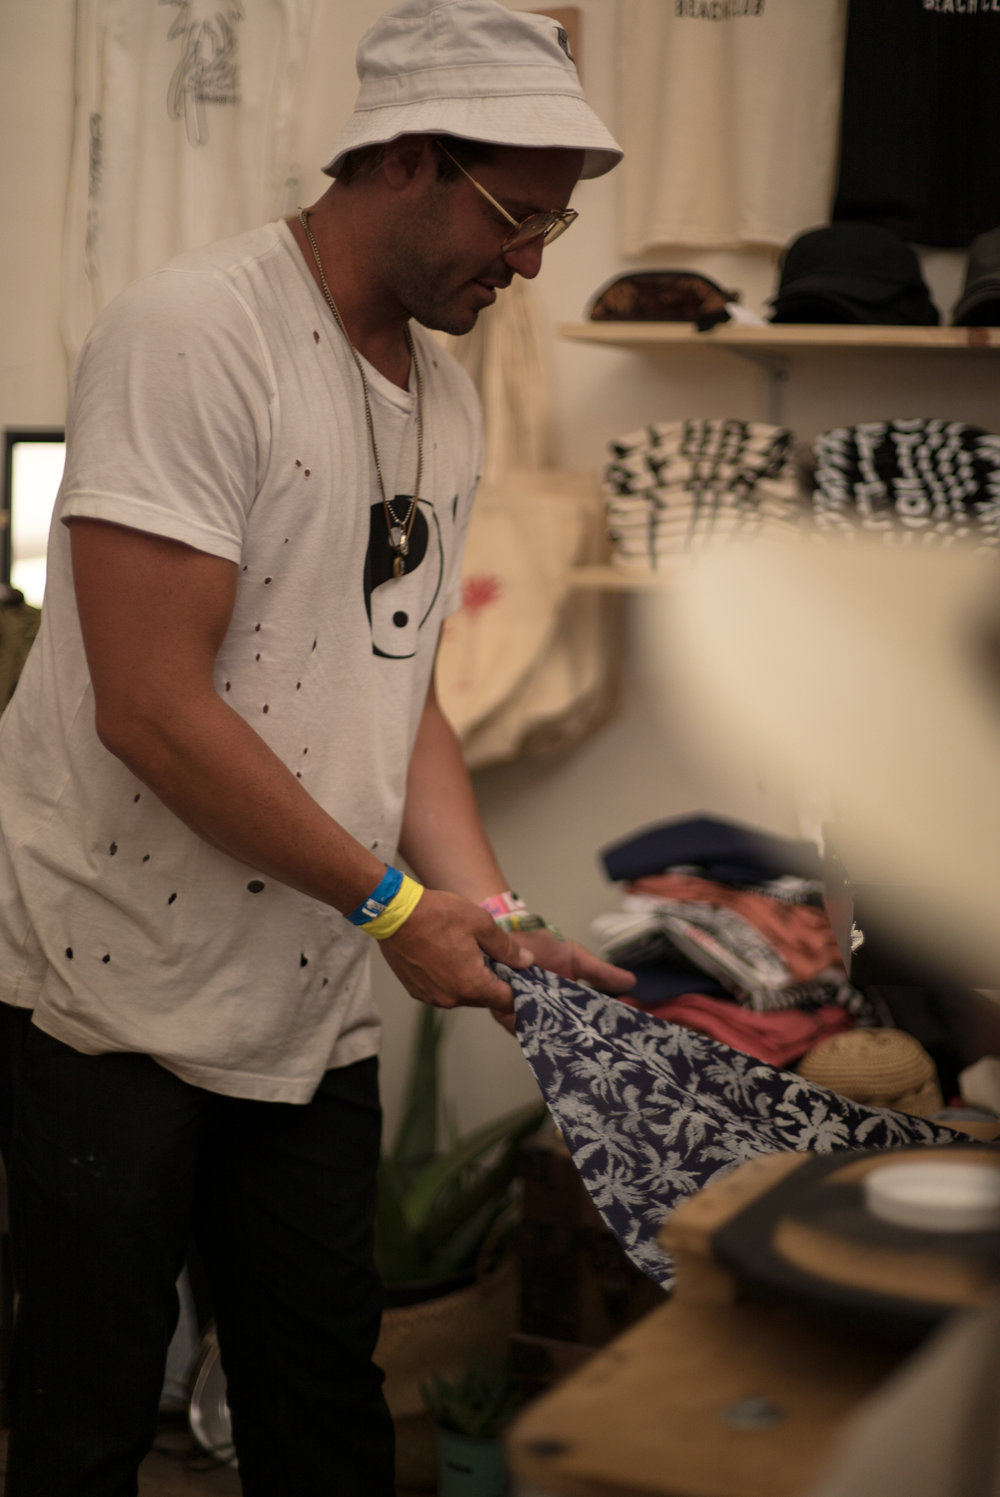 PLNT_MAG_COACHELLA_PHOTOS_60.JPG